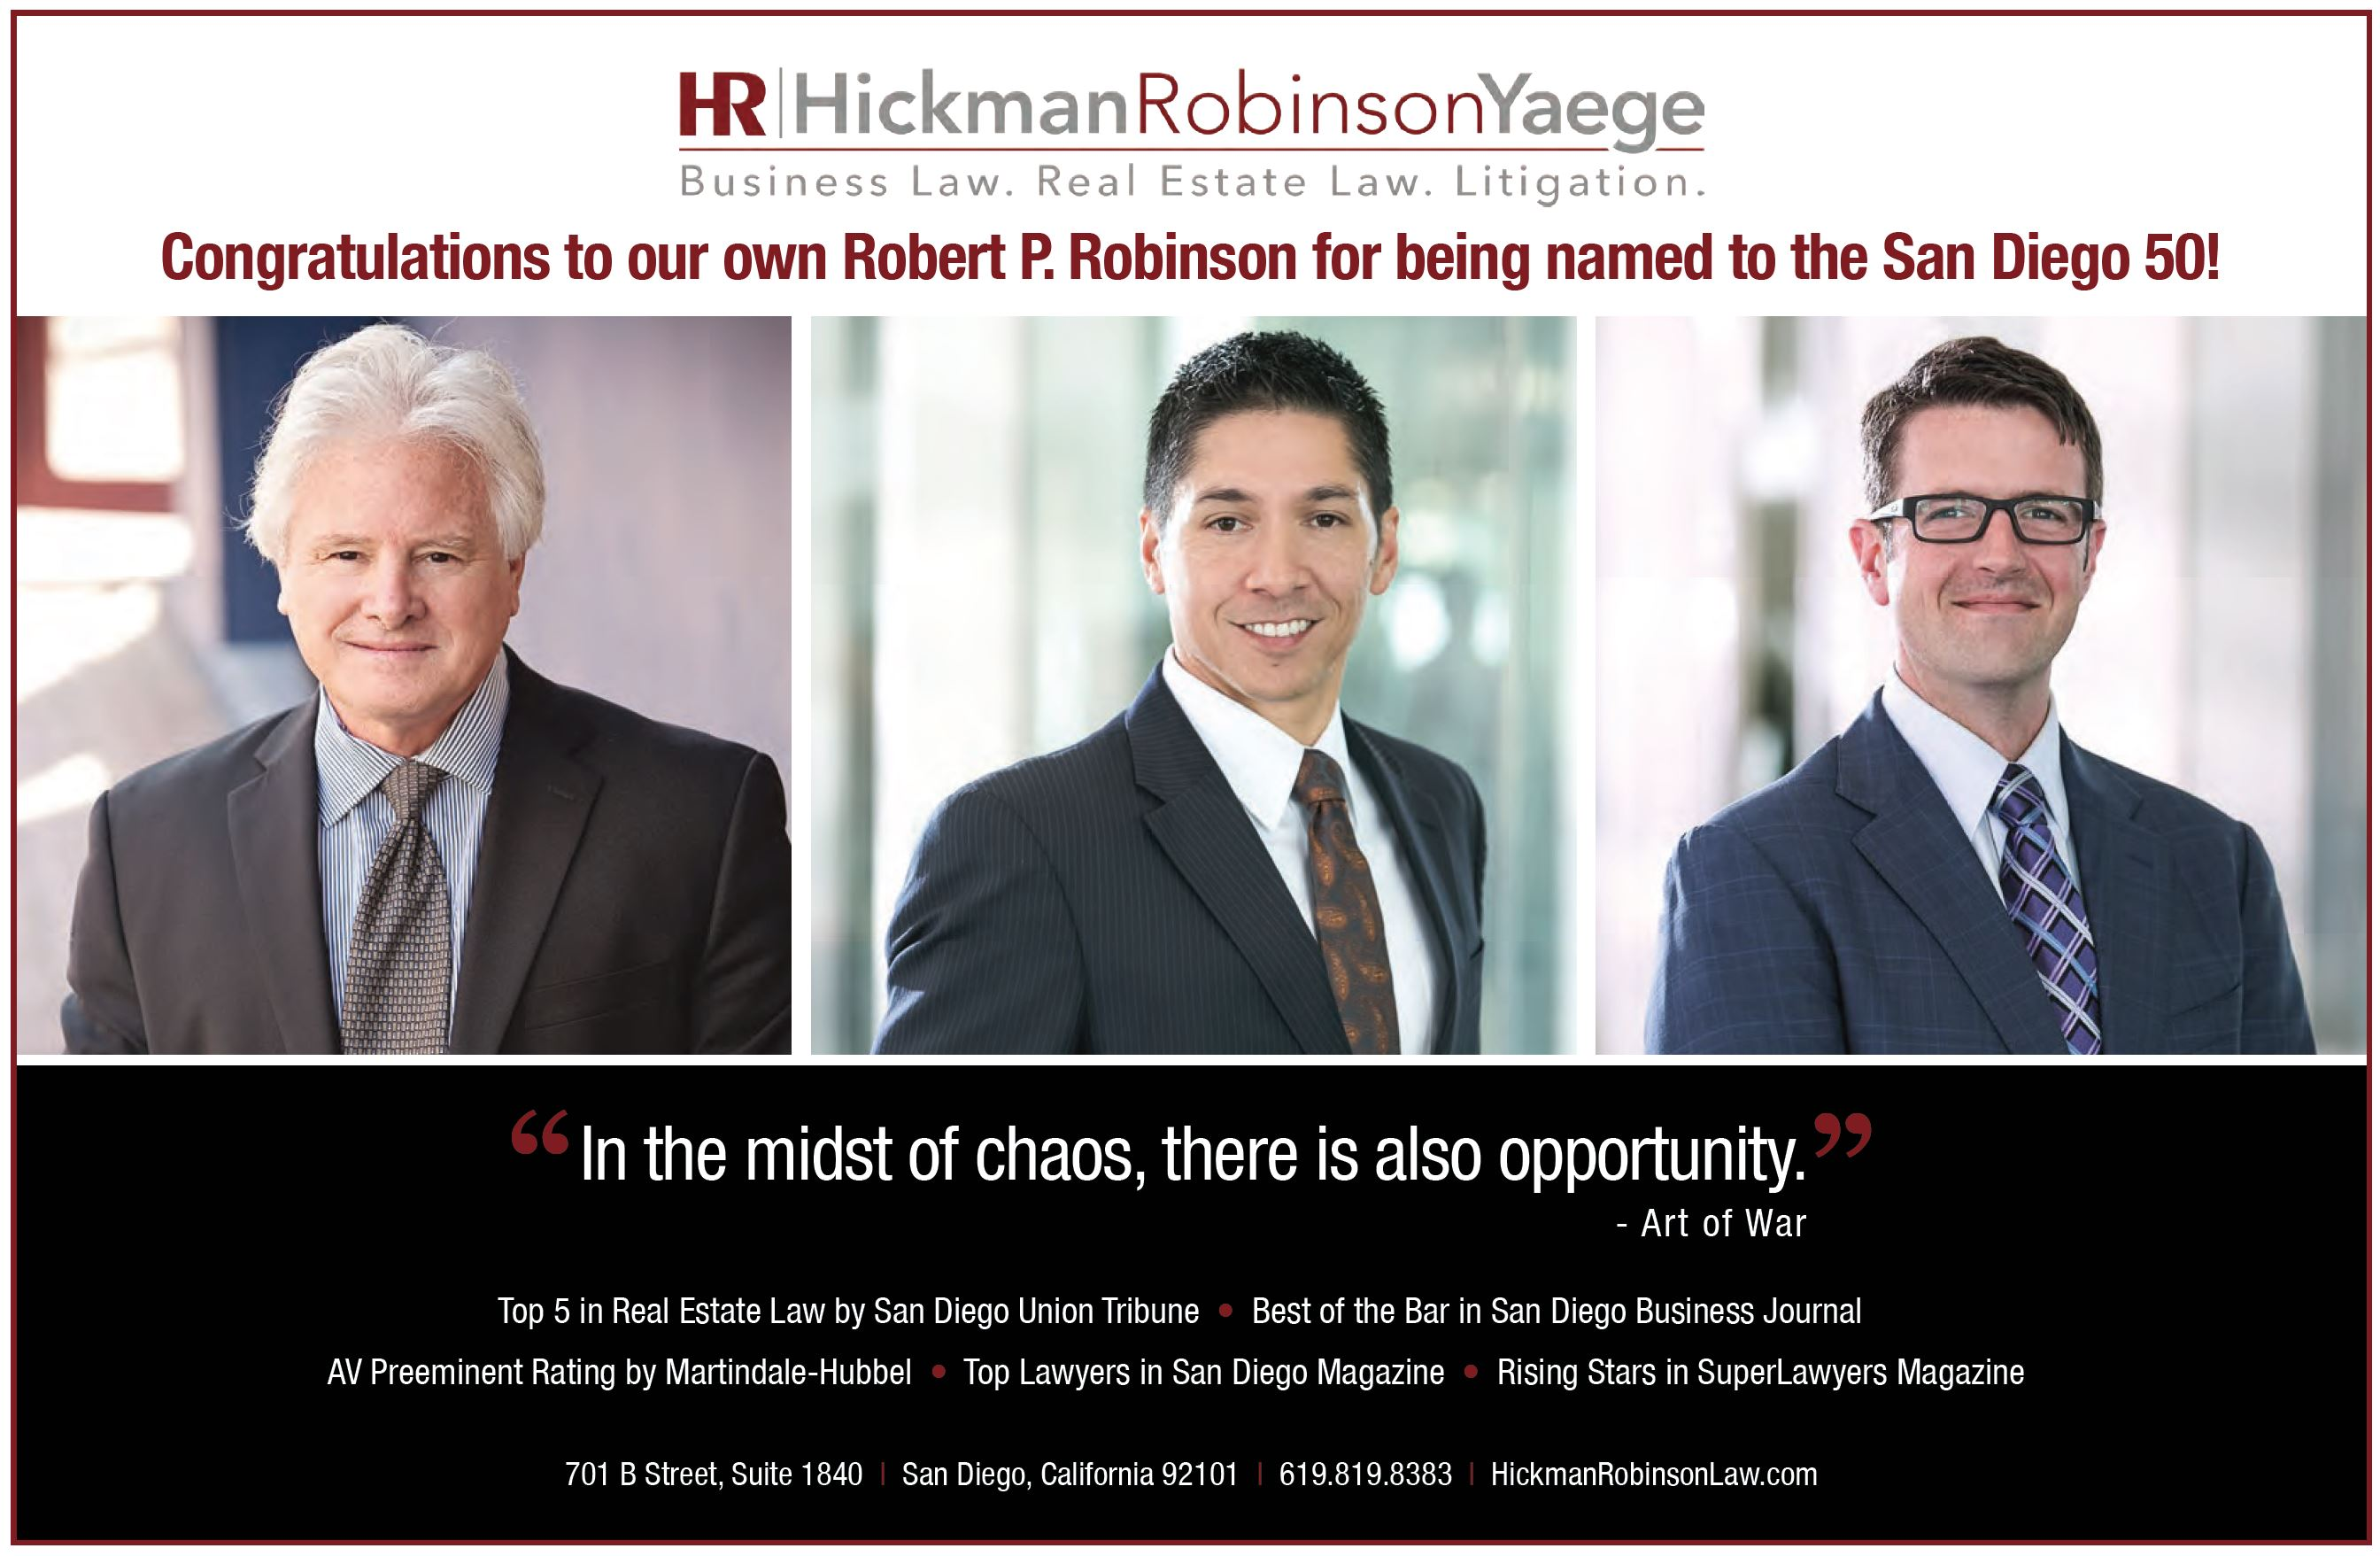 Hickman Robinson Yaege featured in SDBJ